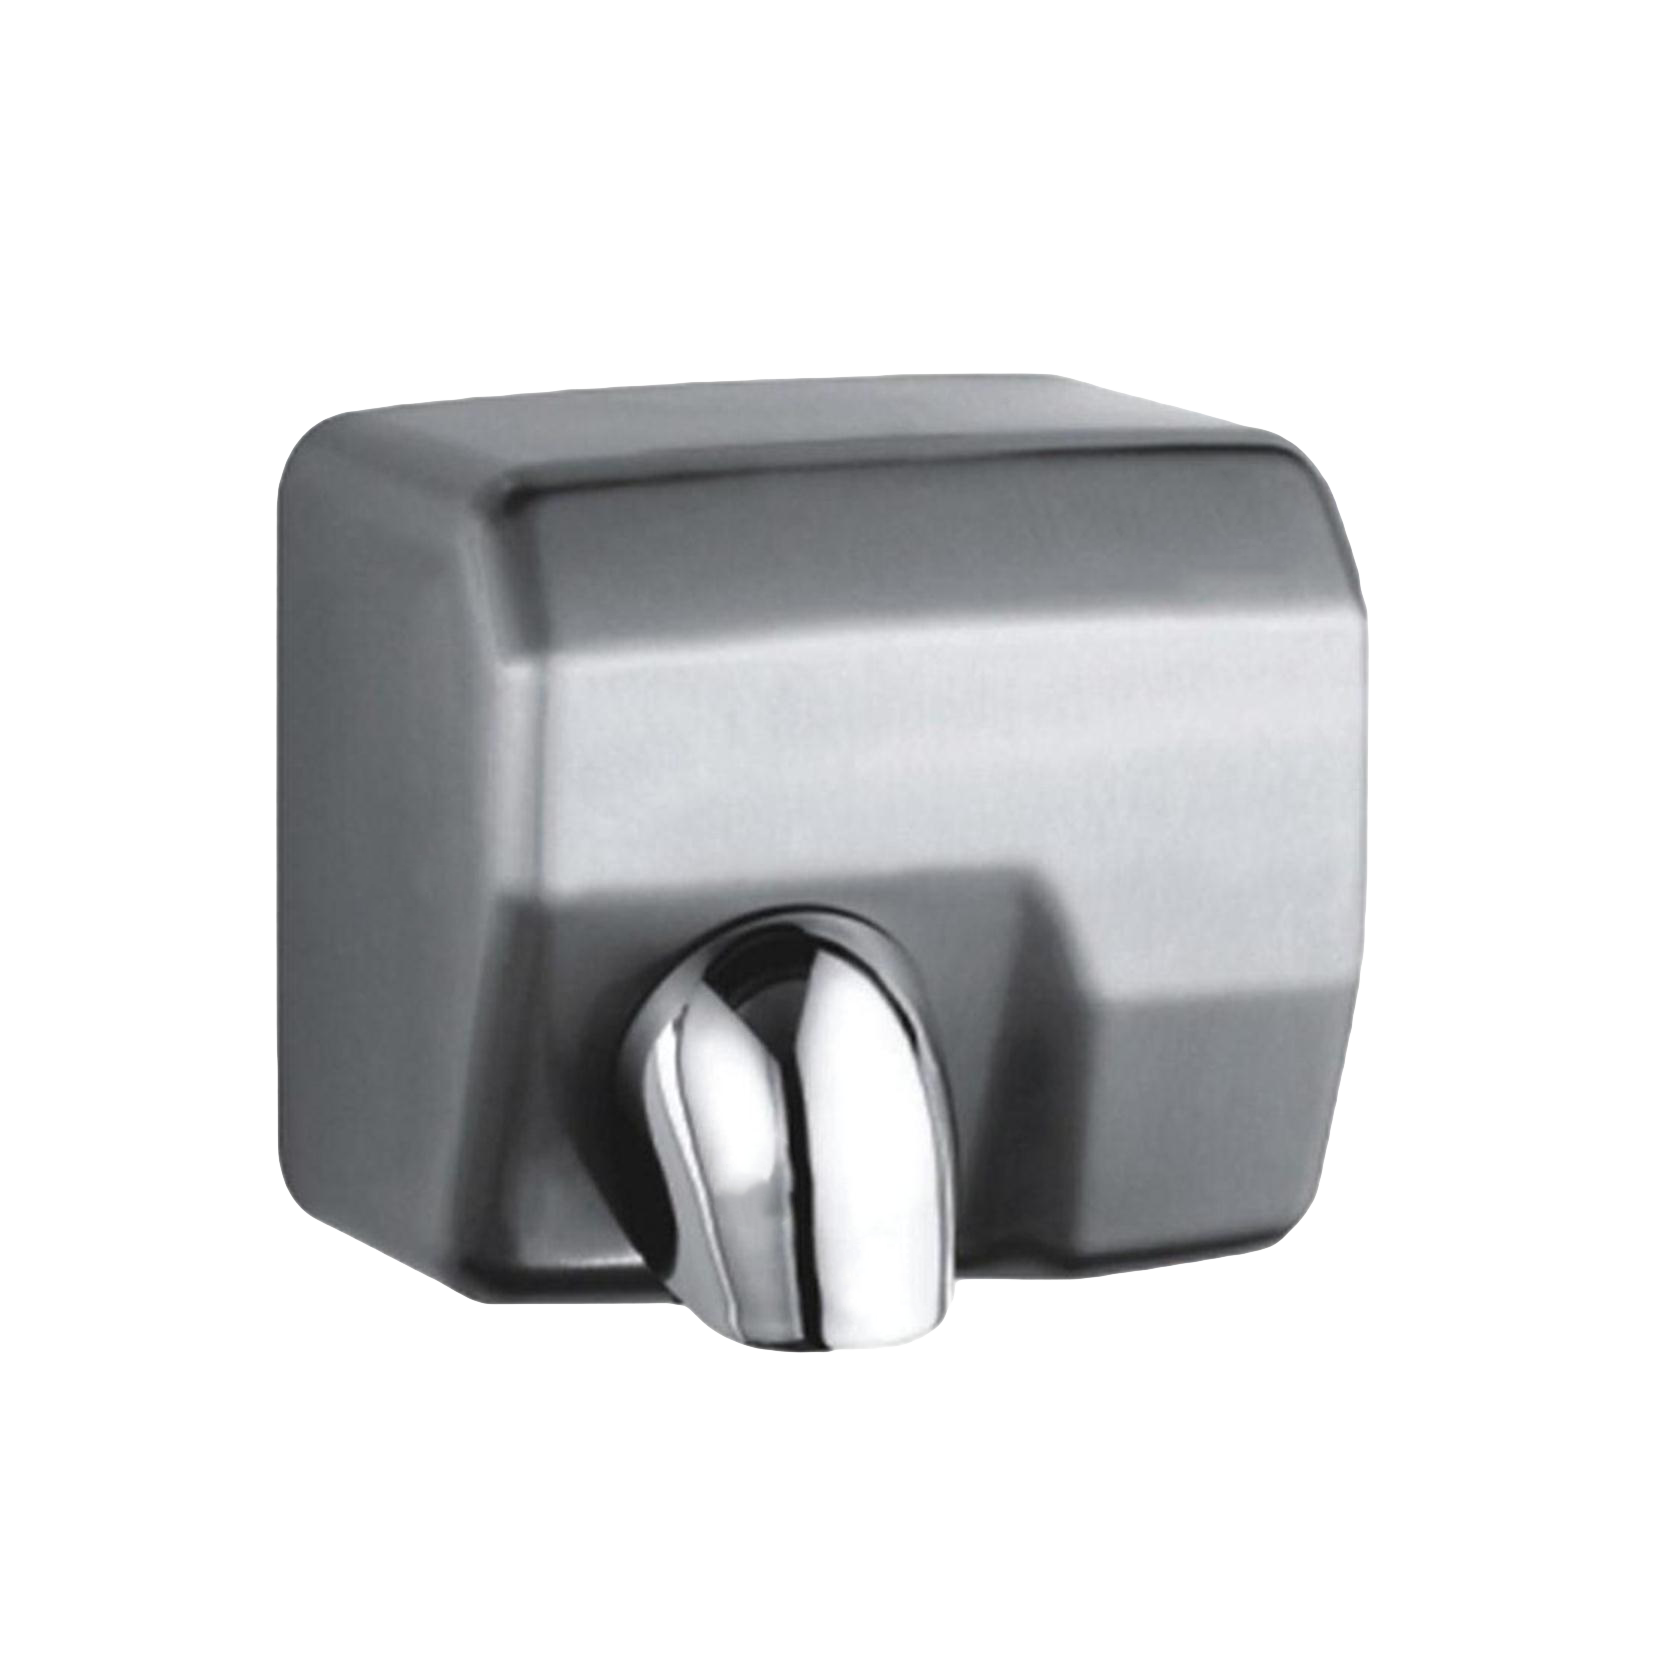 Hectoserve Stainless Steel hand dryer